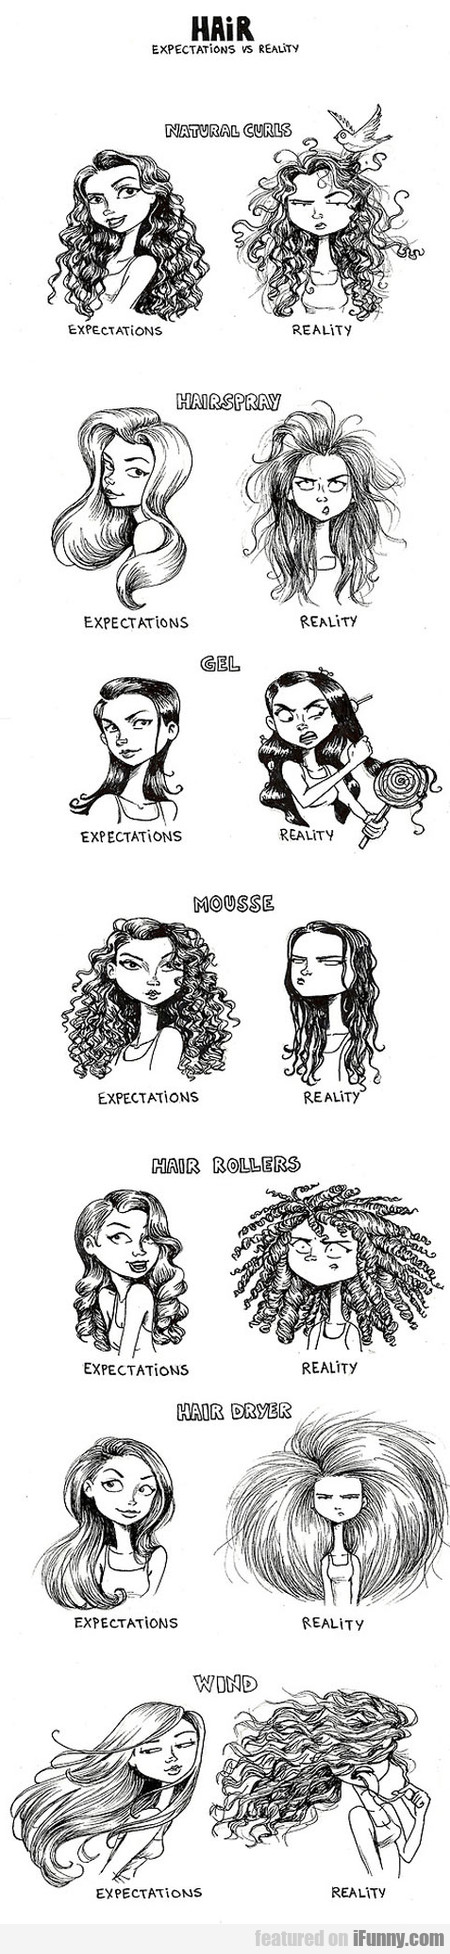 Hair - Expectations Versus Reality